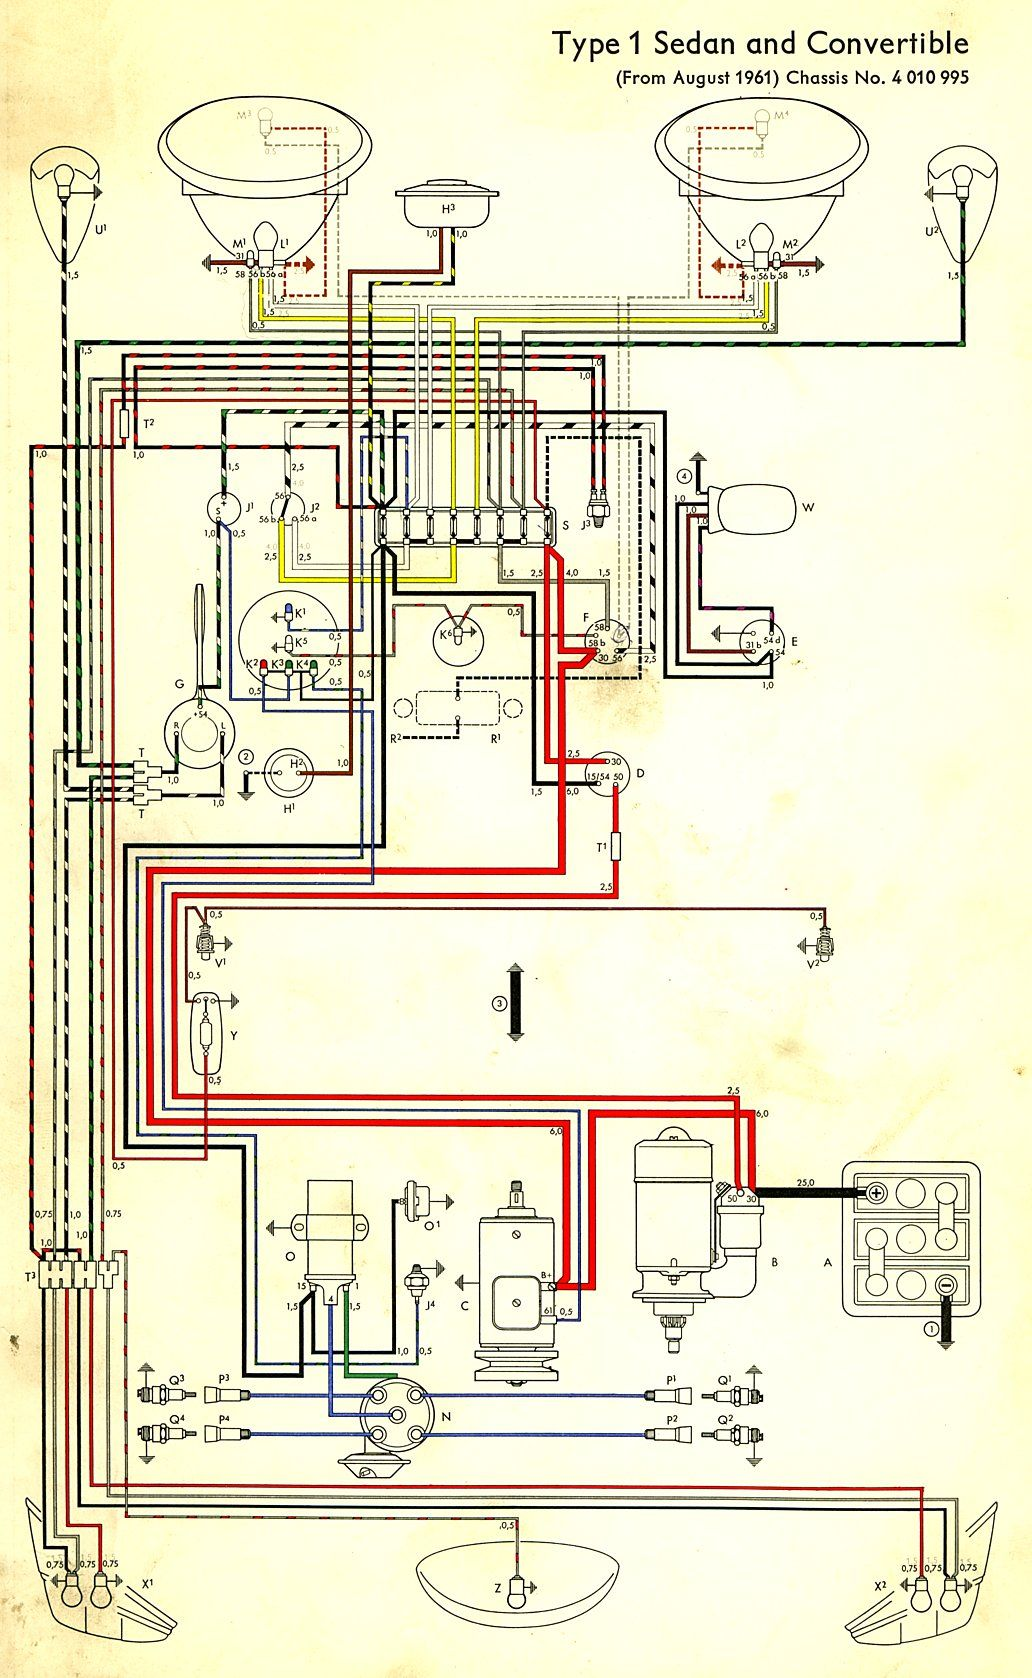 hight resolution of wiring diagram in color 1964 vw bug beetle convertible the samba 1964 vw beetle wiring diagram 1964 volkswagen wiring diagram